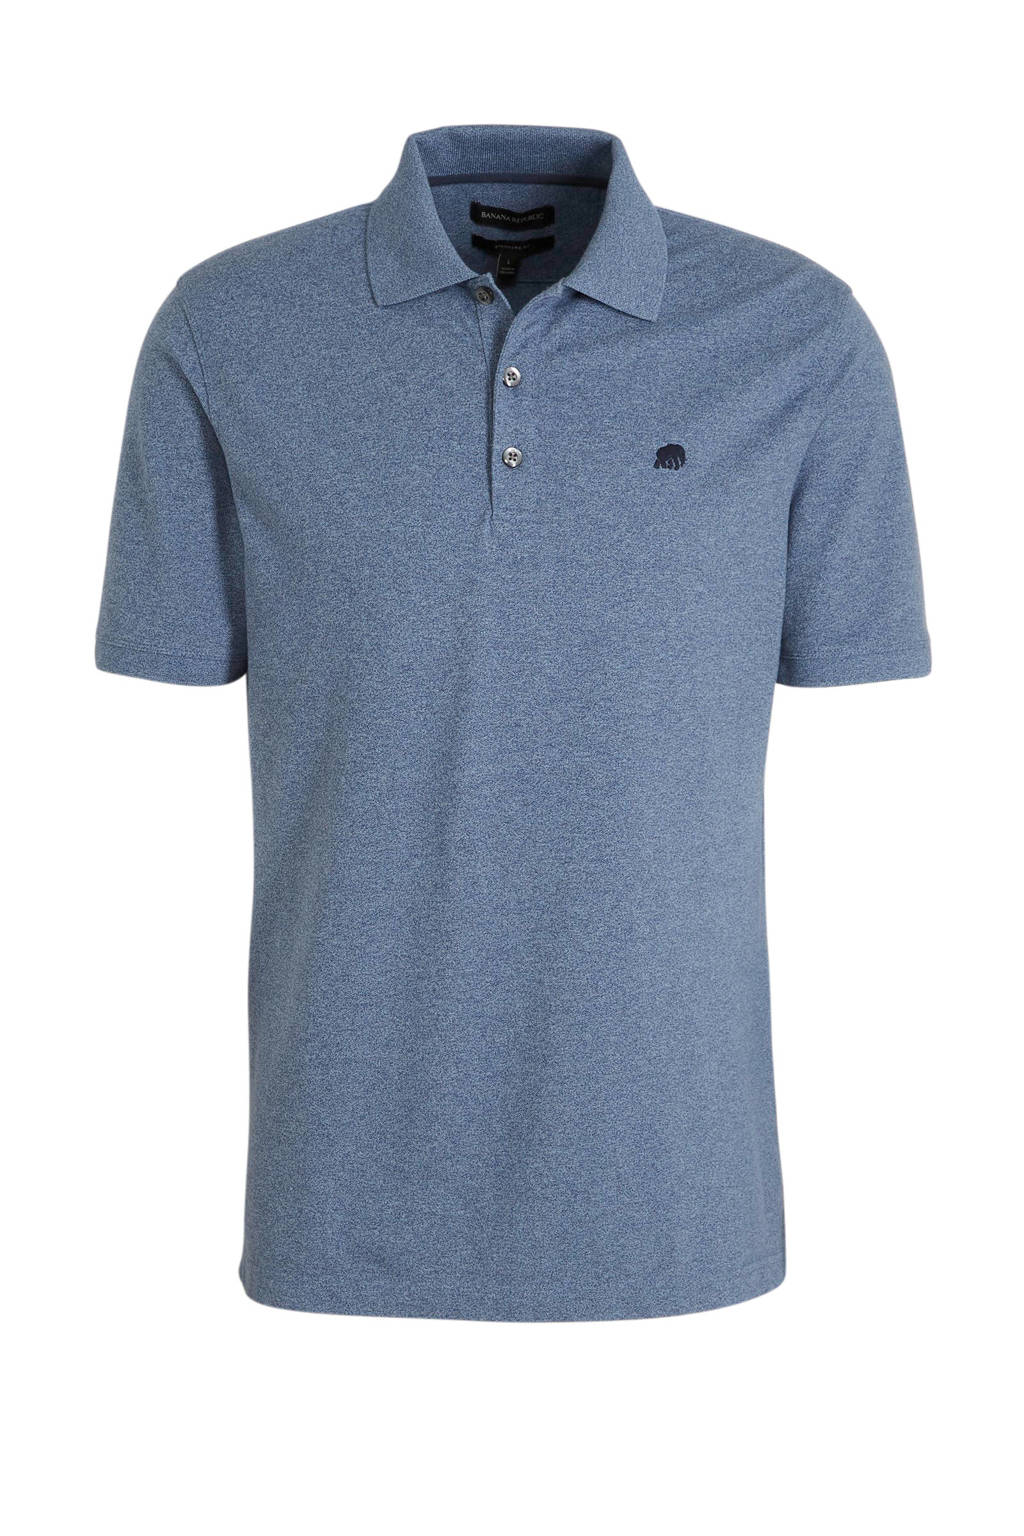 Banana Republic regular fit polo donkerblauw, Donkerblauw